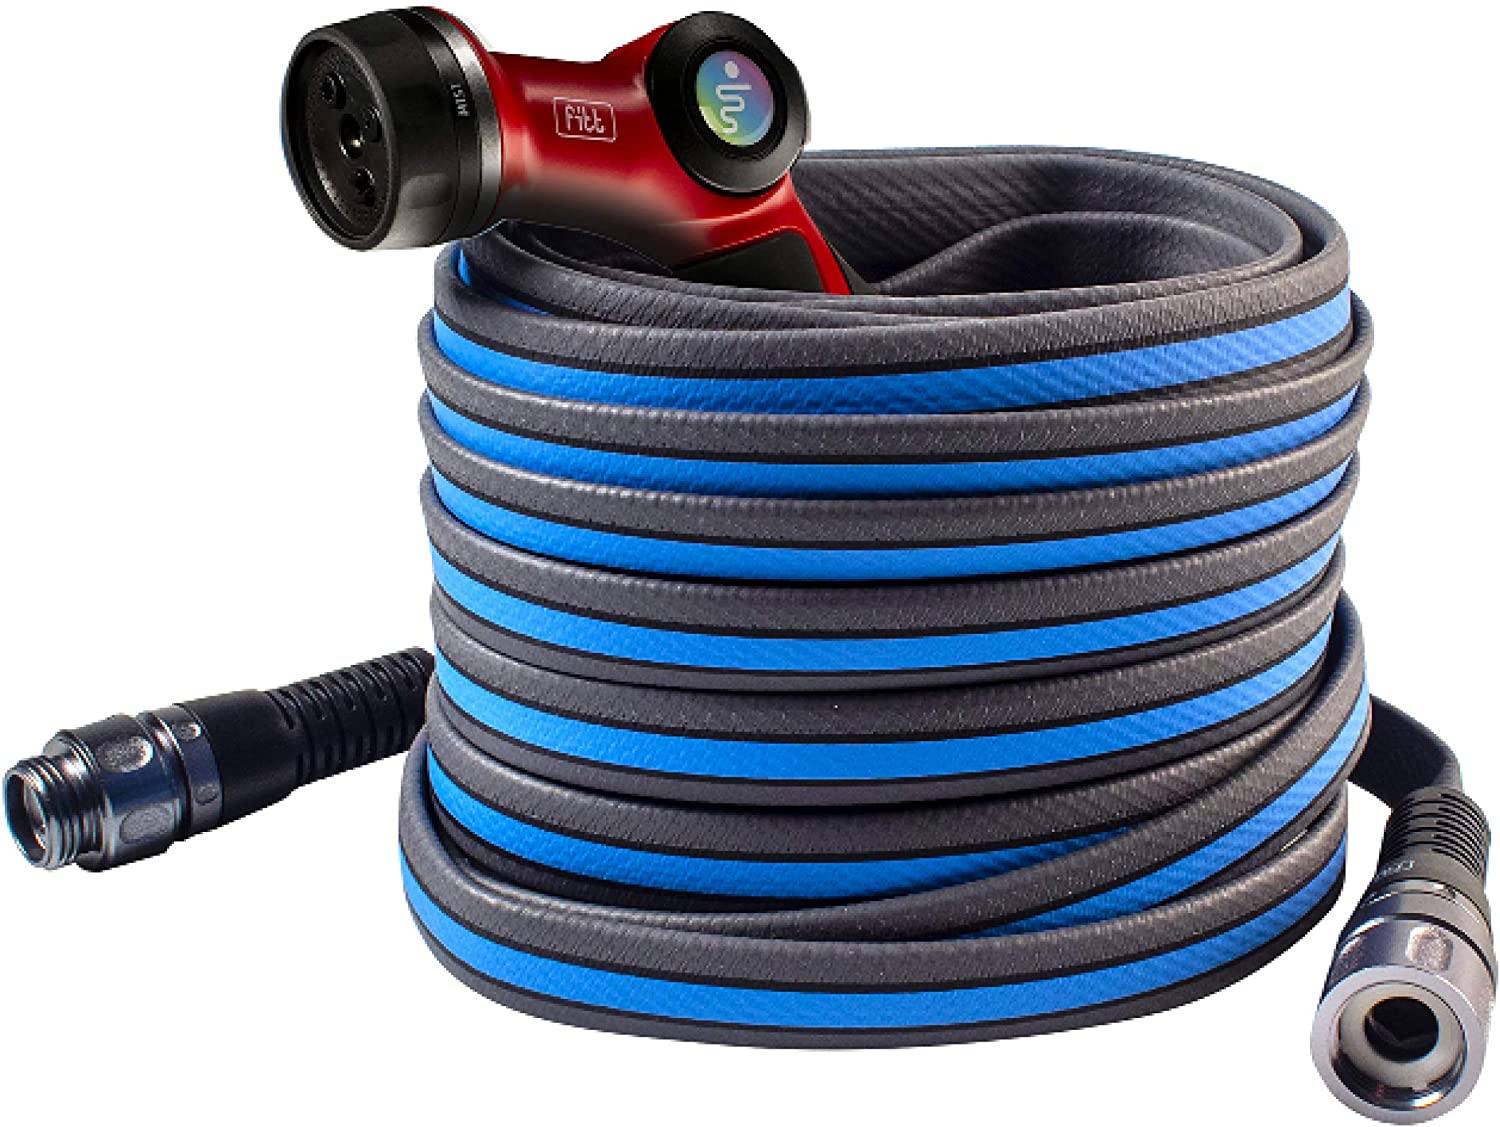 FITT Force Pro Water Hose and Nozzle, 5/8